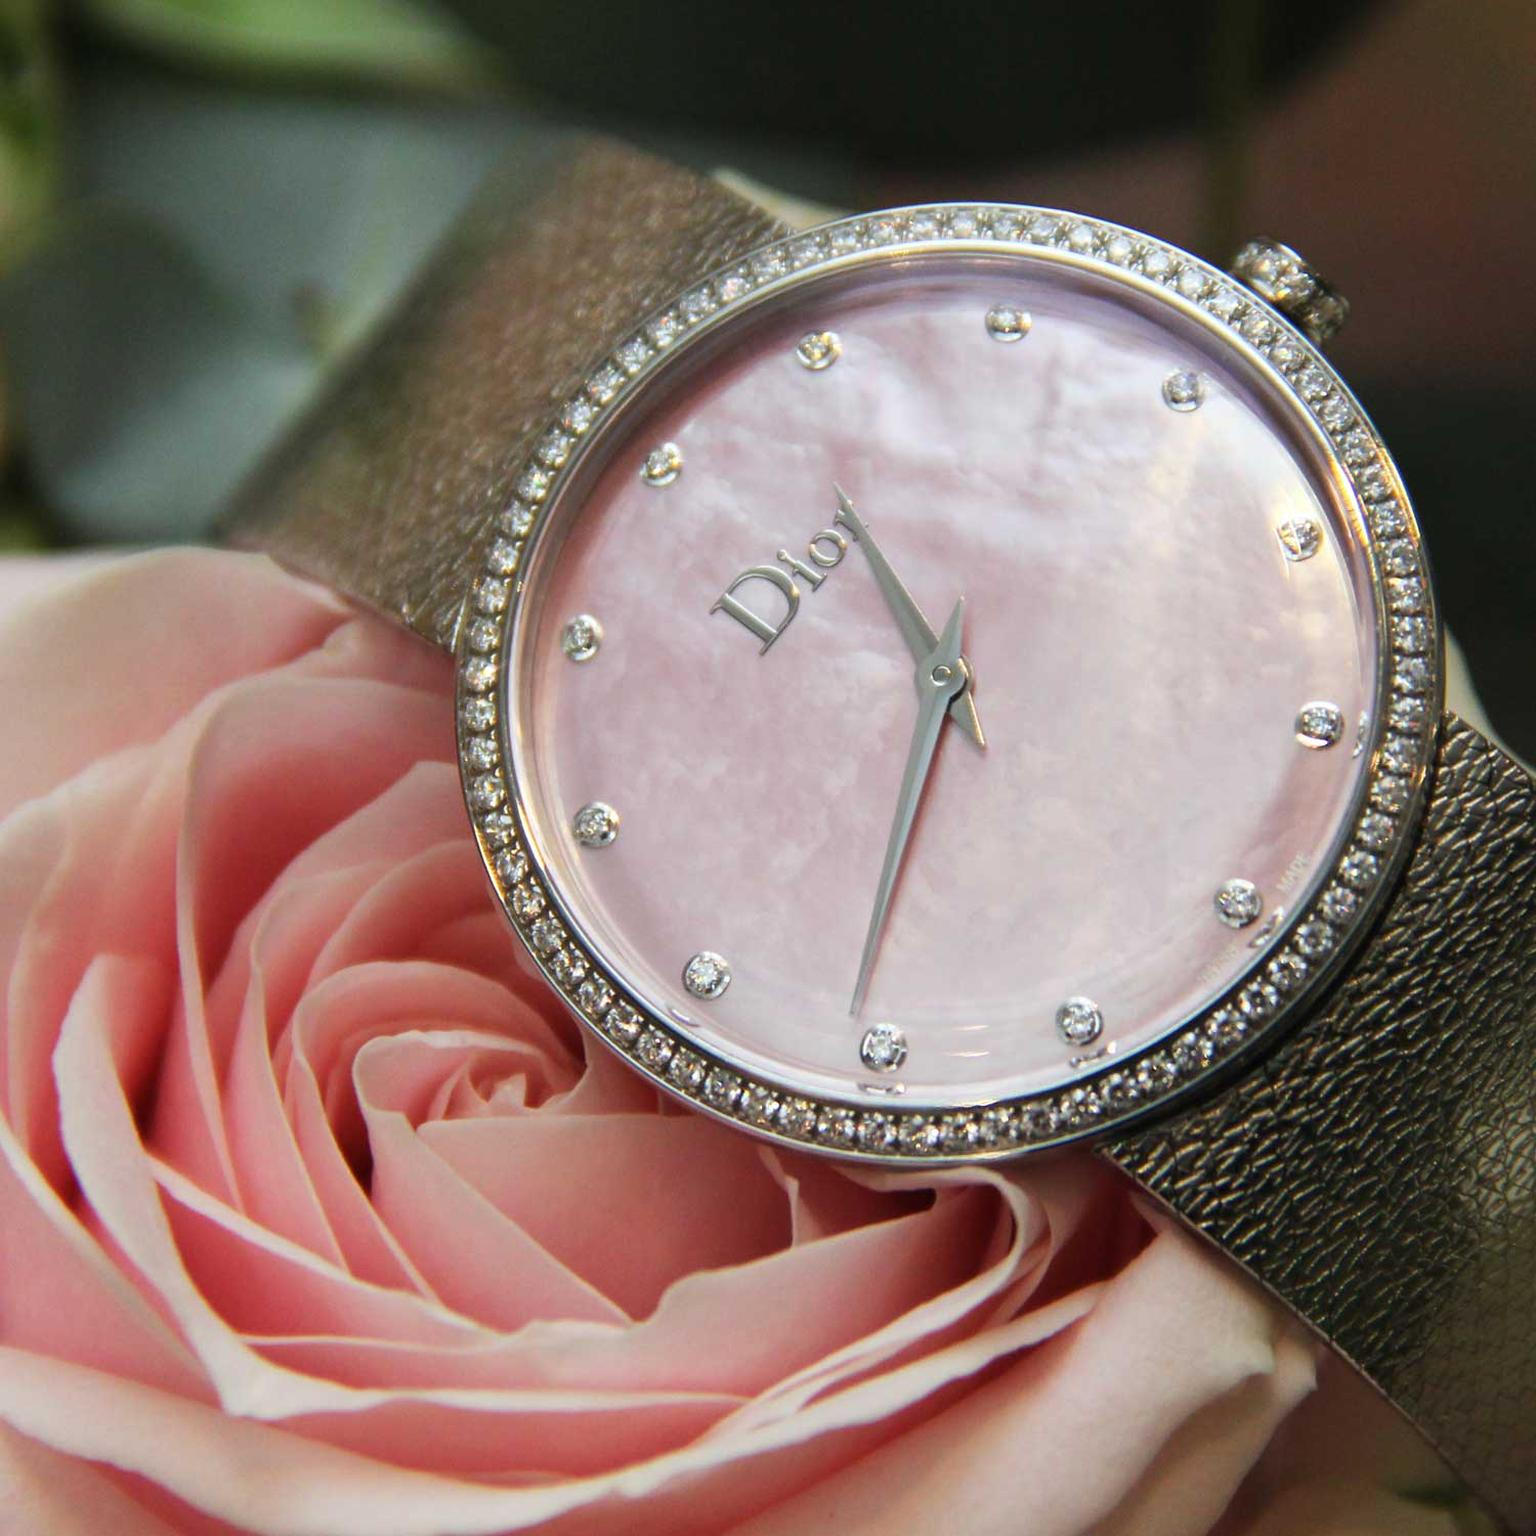 La D de Dior Satine watch with a pink mother-of-pearl dial